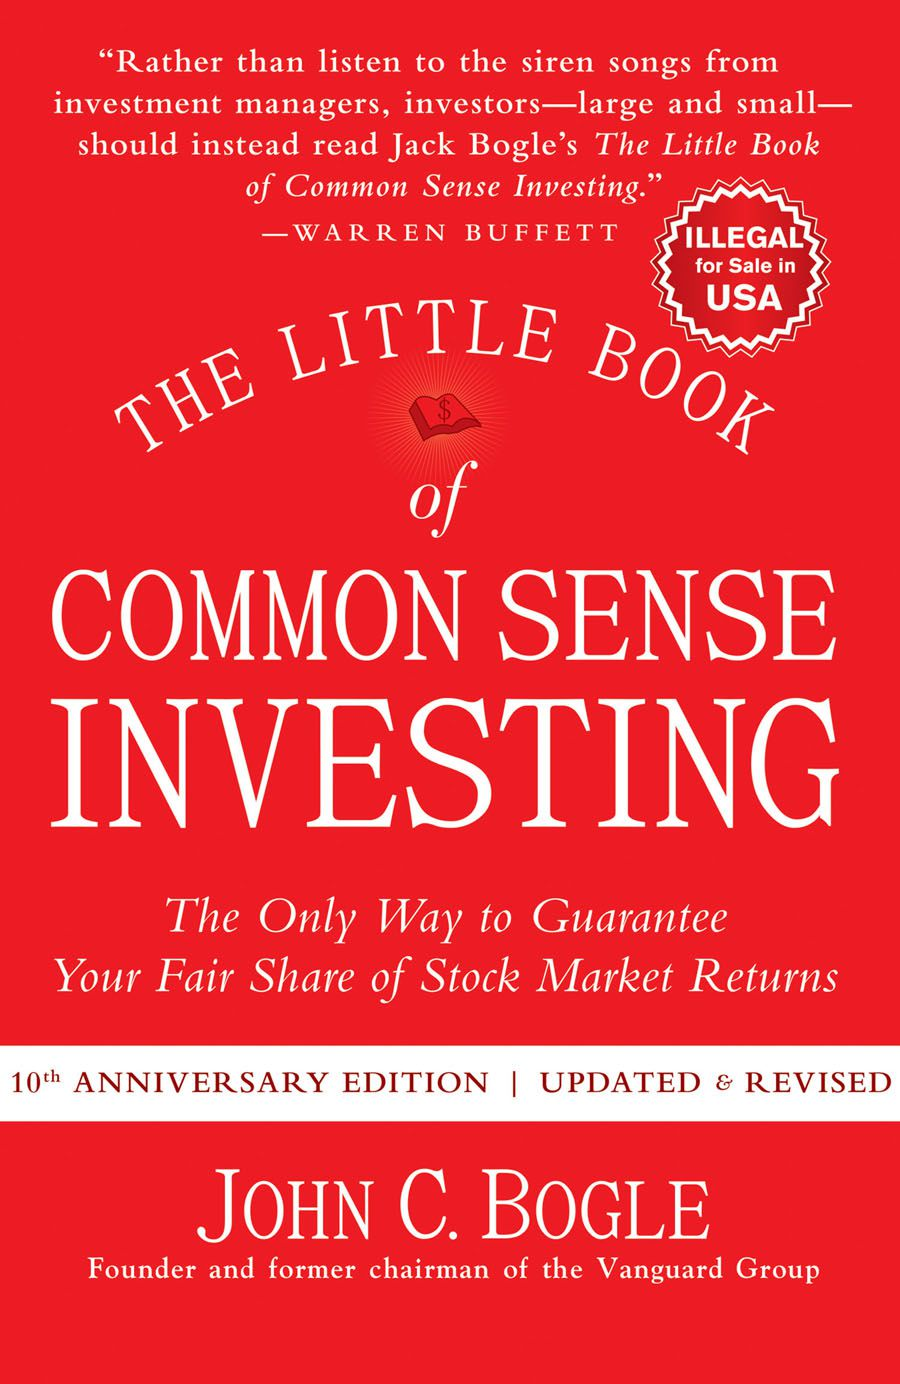 Best investing book: Common Sense Investing